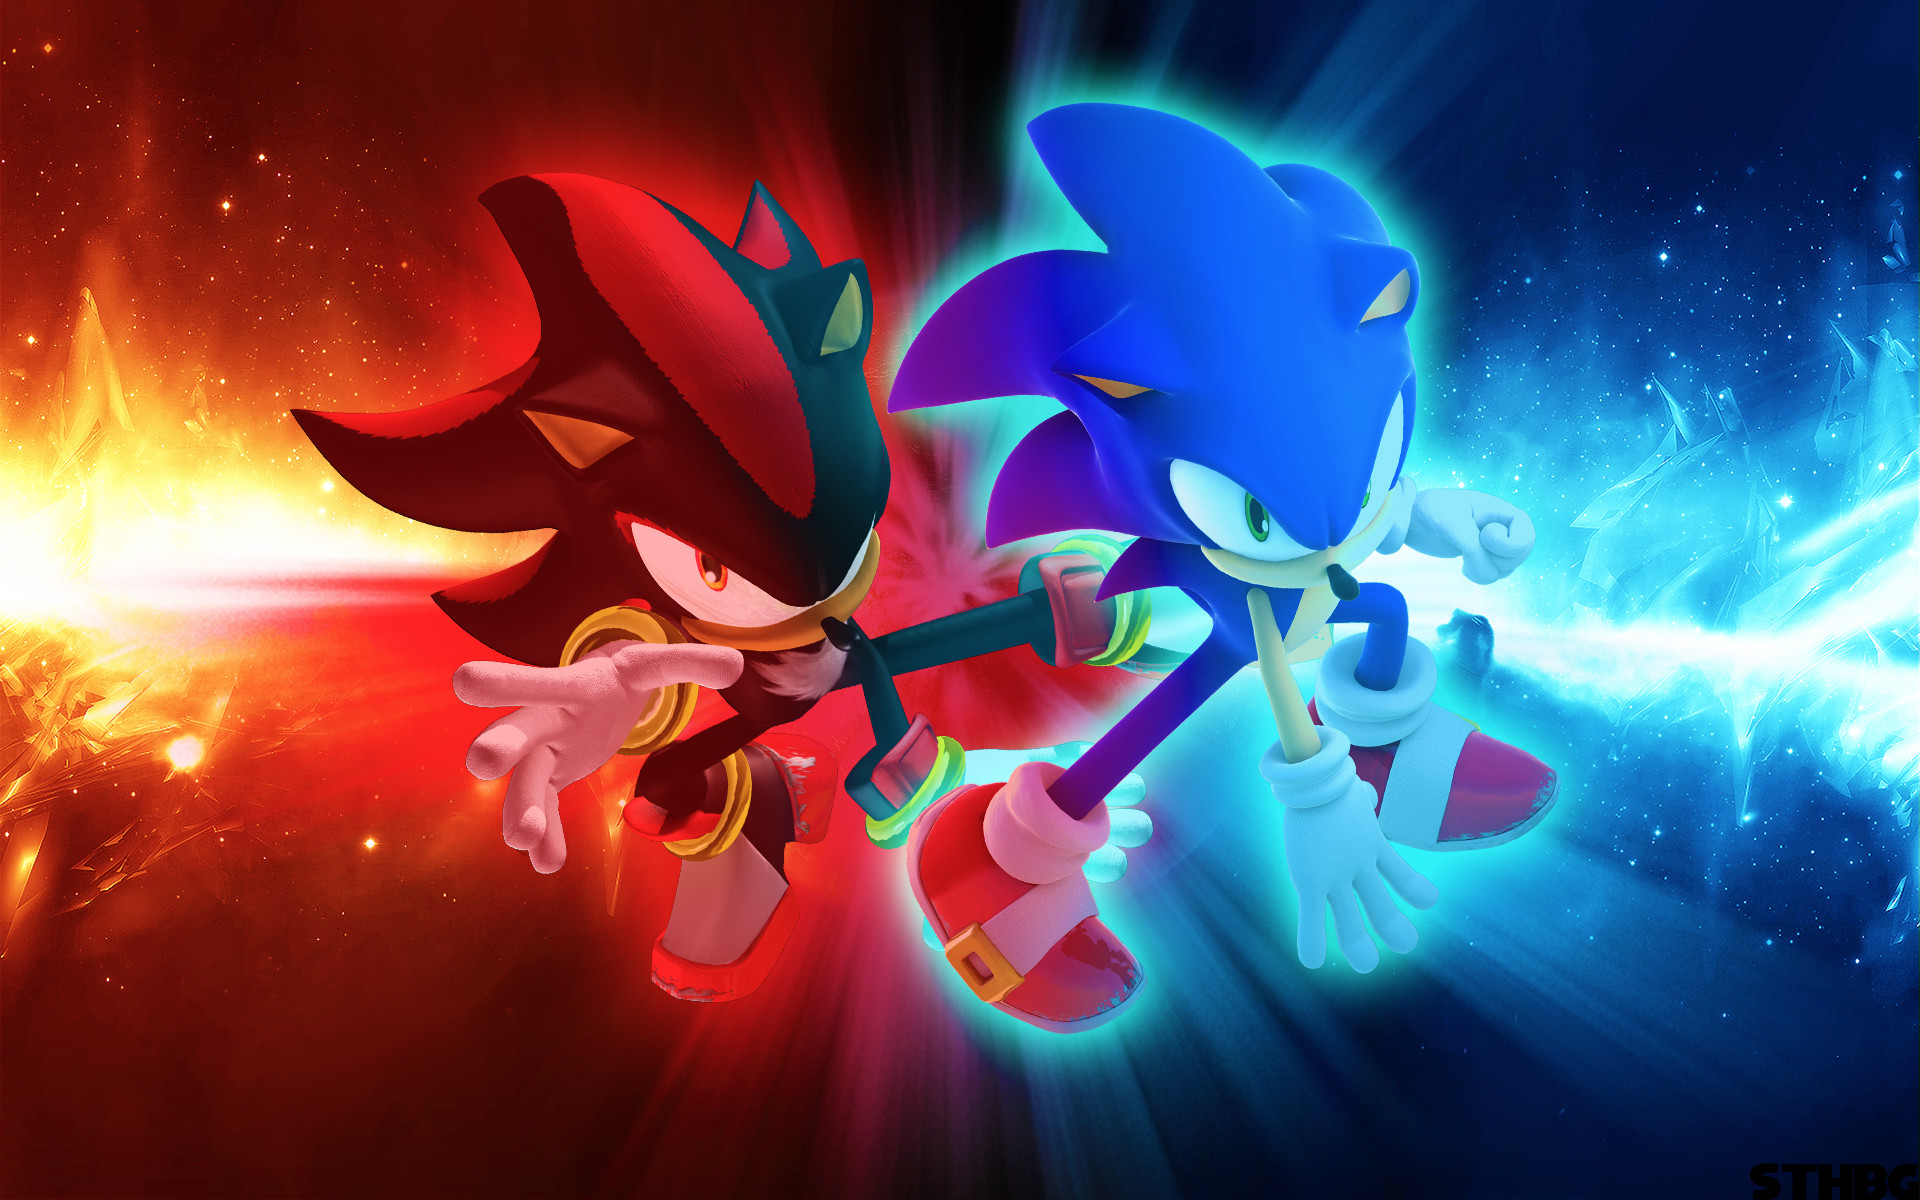 … wallpapers 7624 amazing wallpaperz; sonic the hedgehog tag gamephd …